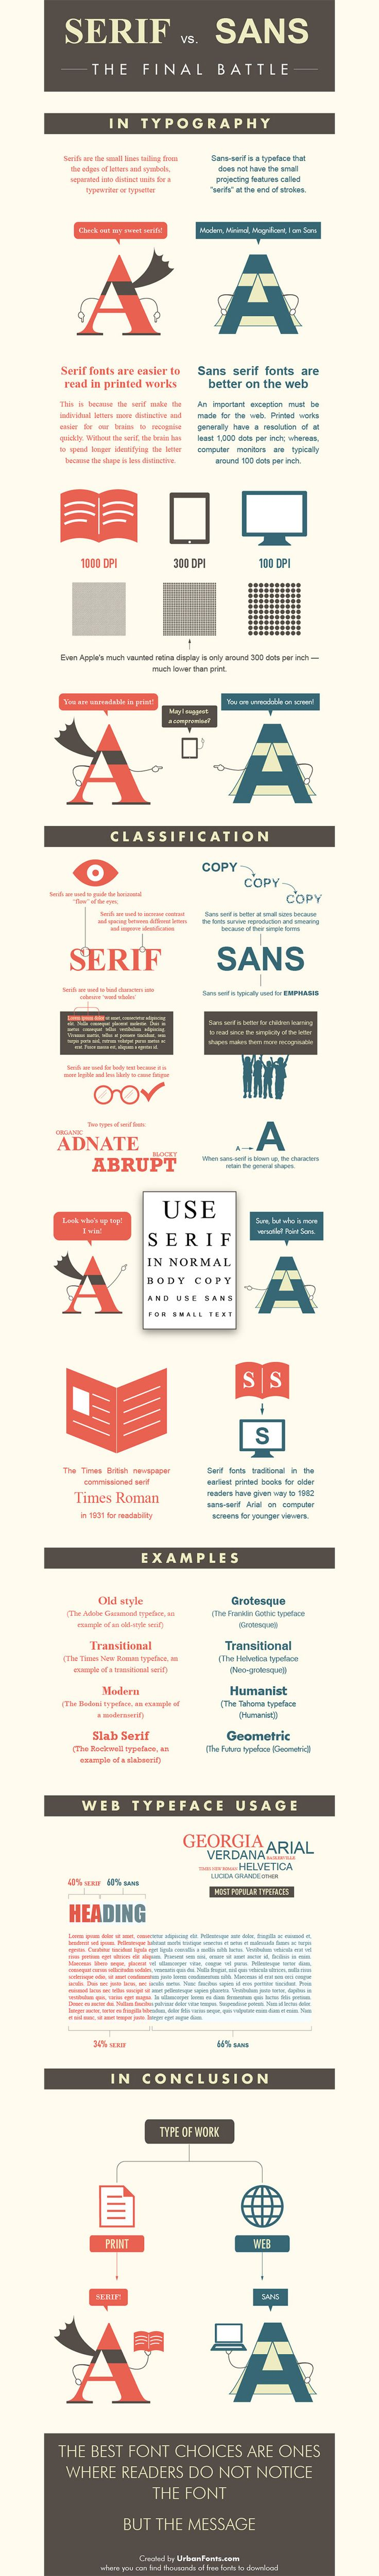 A simple yet good guide, if you don't already know this:  The Difference Between Serif And Sans-Serif Explained In One Infographic